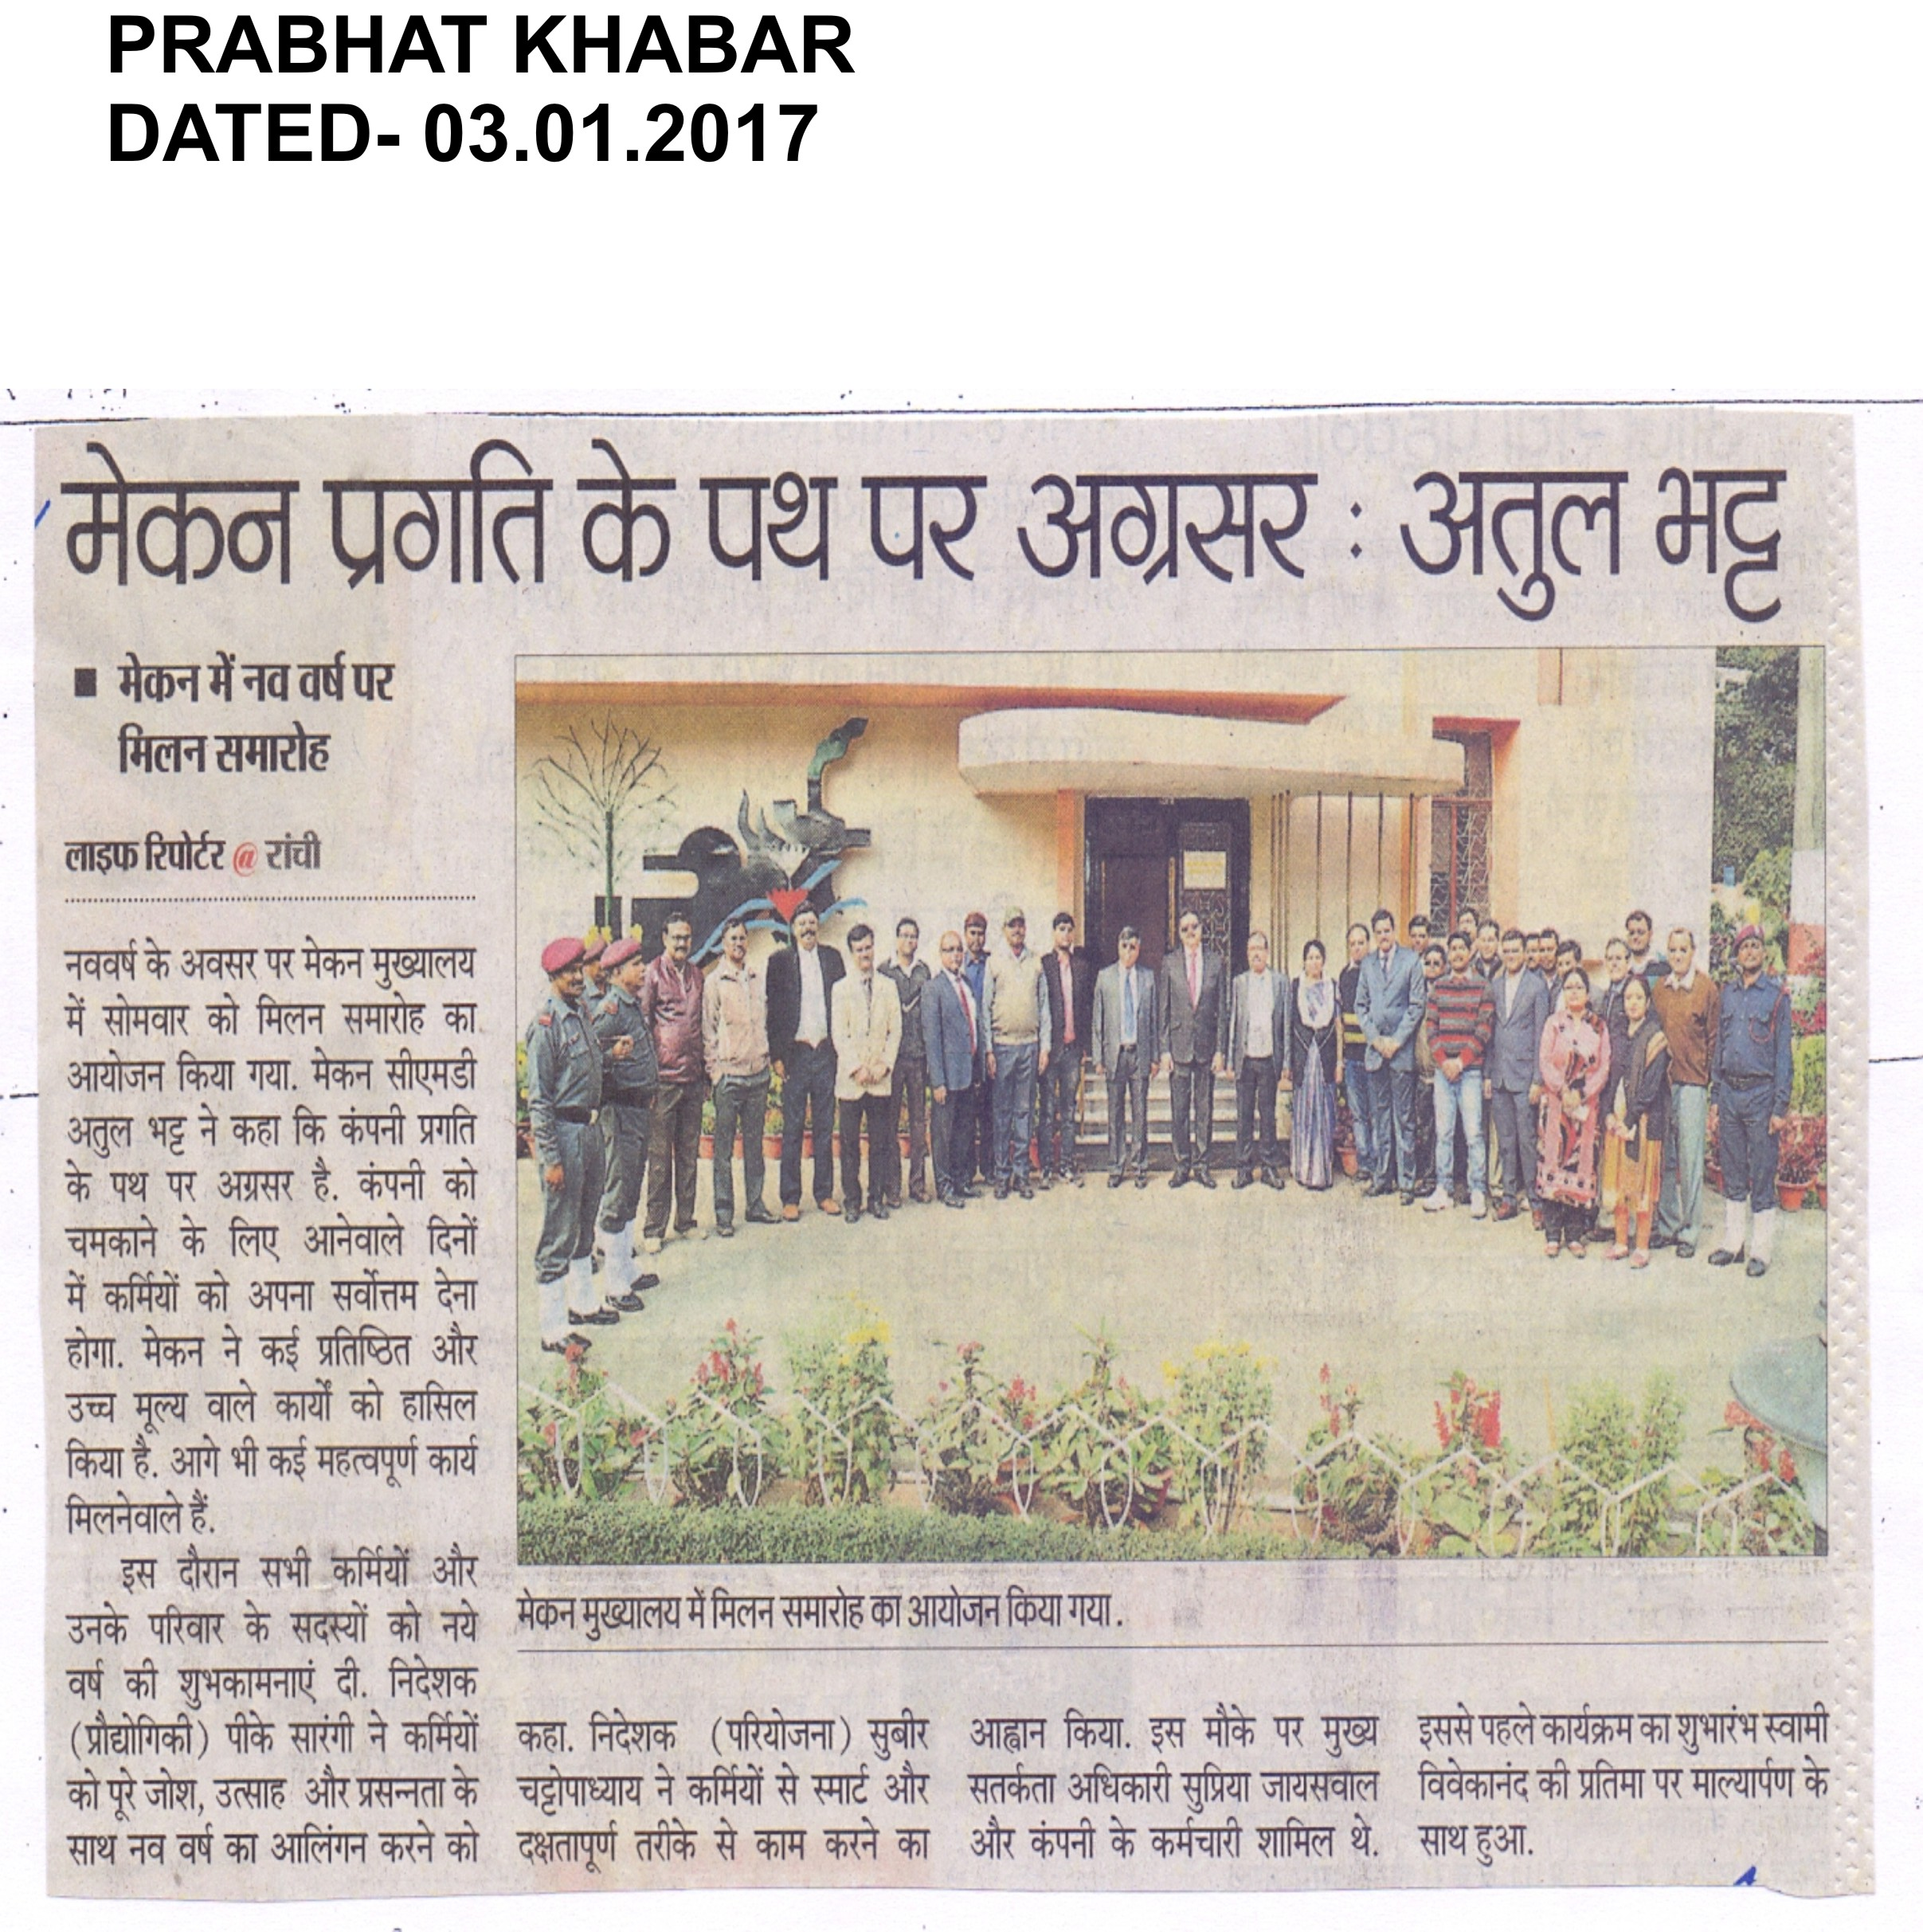 PRABHAT KHABAR